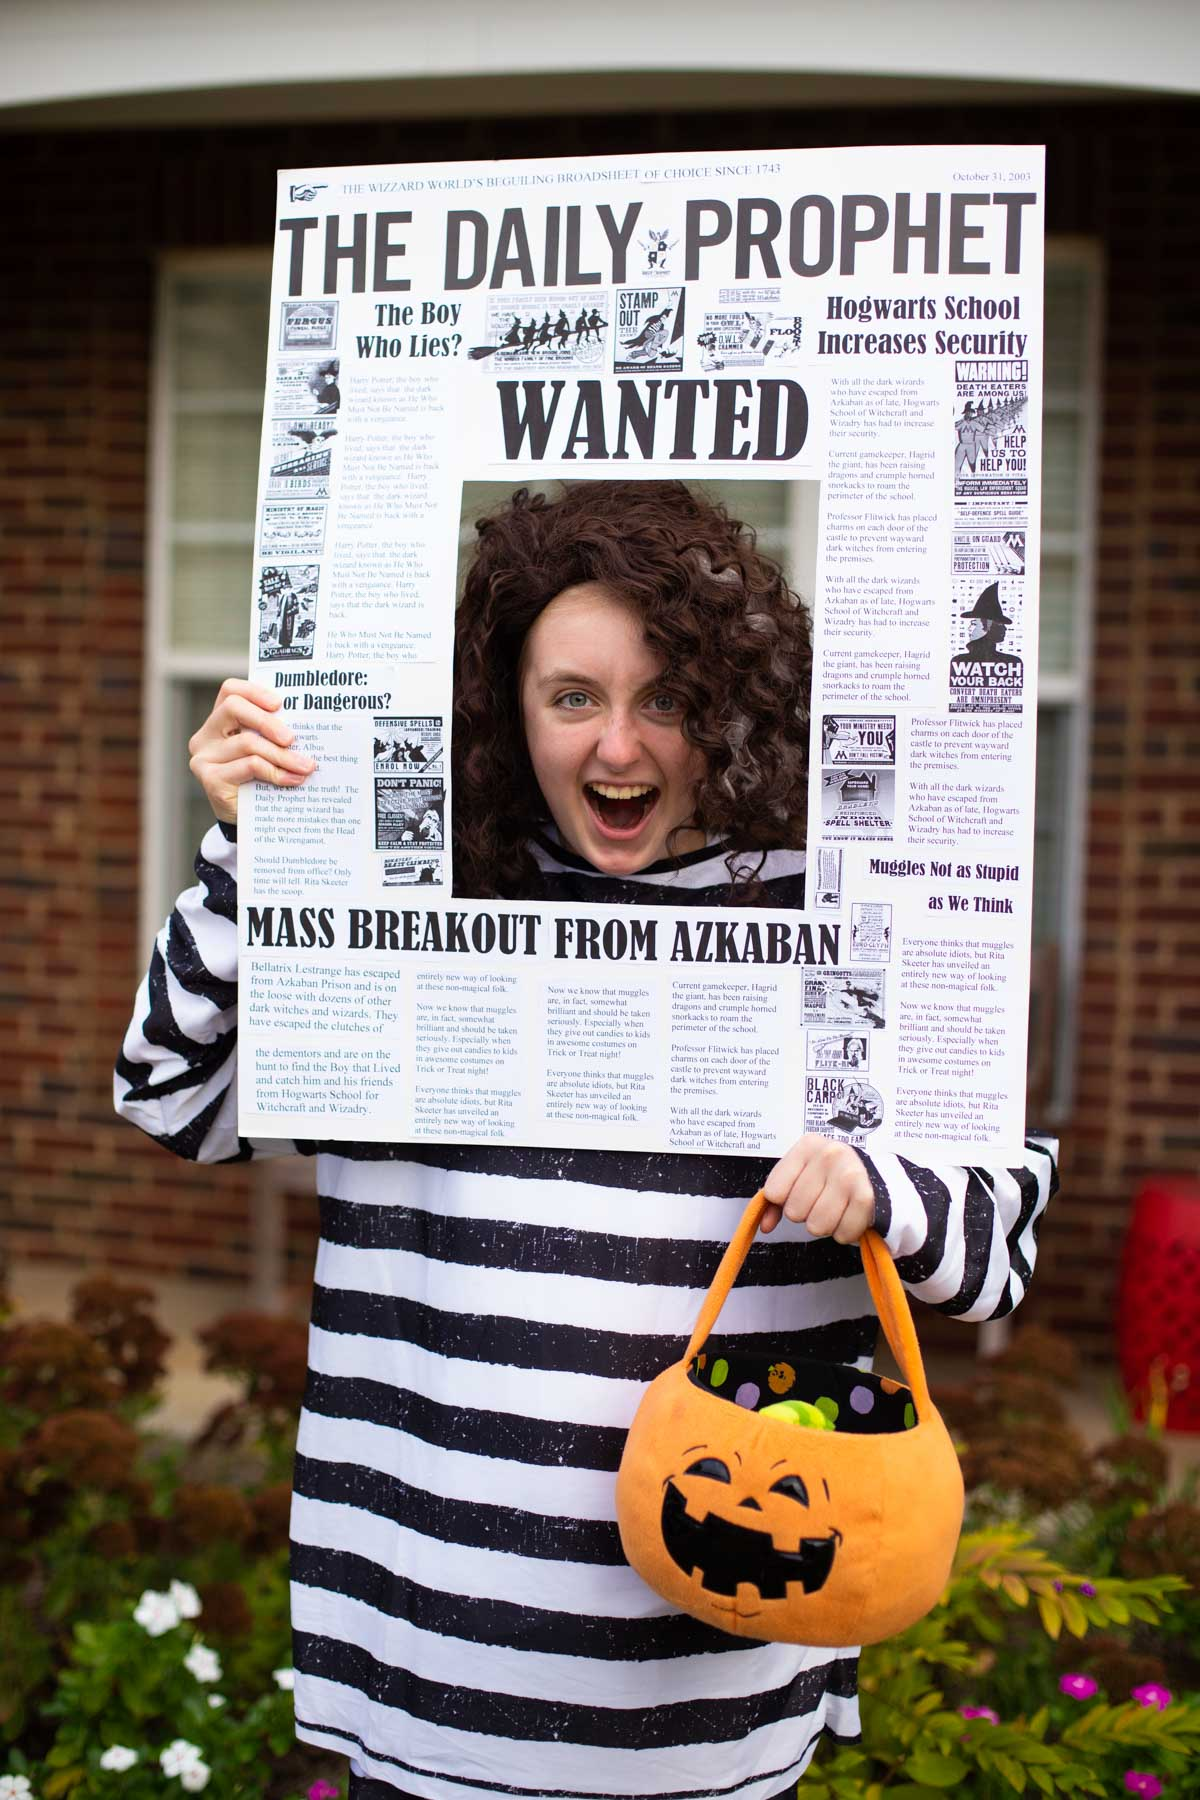 A teen girl is dressed up as Bellatrix Lestrange featured on the Daily Prophet for Halloween.